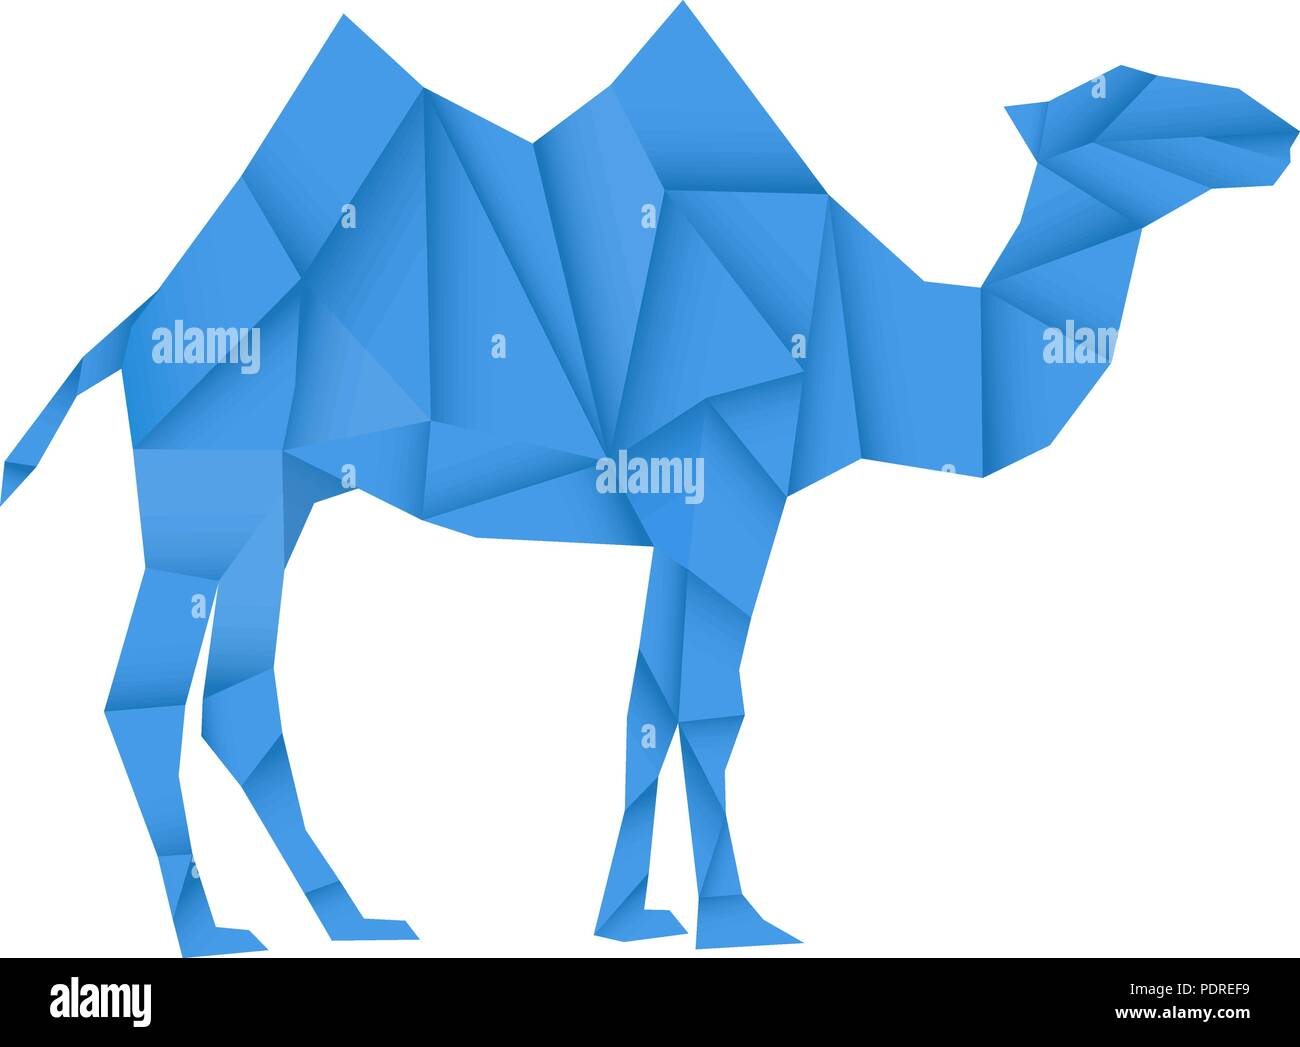 polygonal photos & polygonal images - alamy